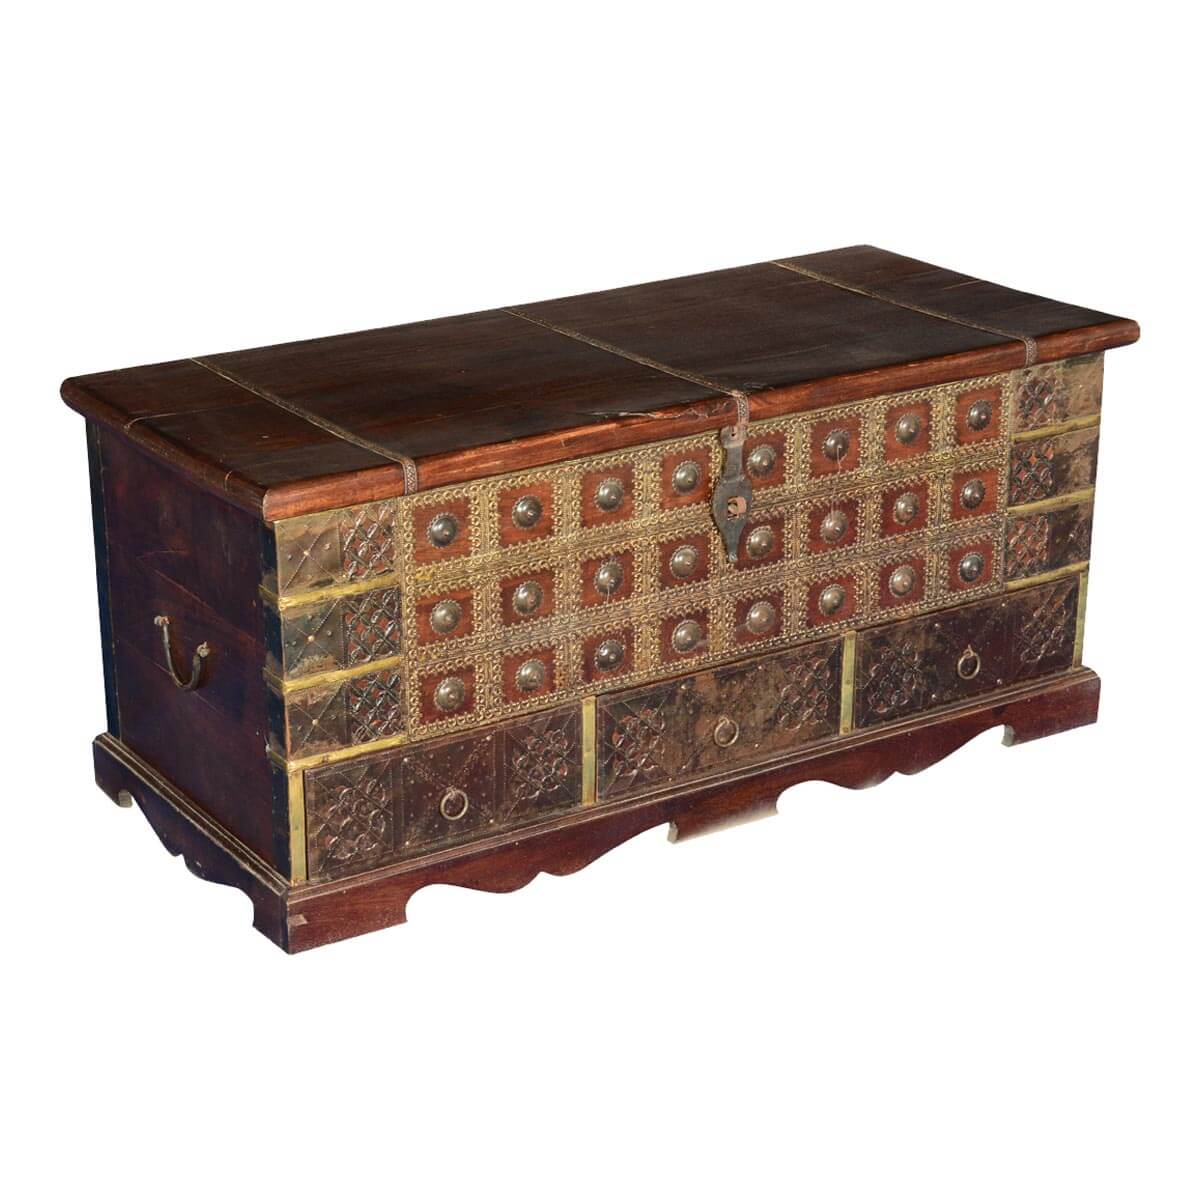 Tudor treasures mango wood brass coffee table chest w for Coffee table chest with drawers